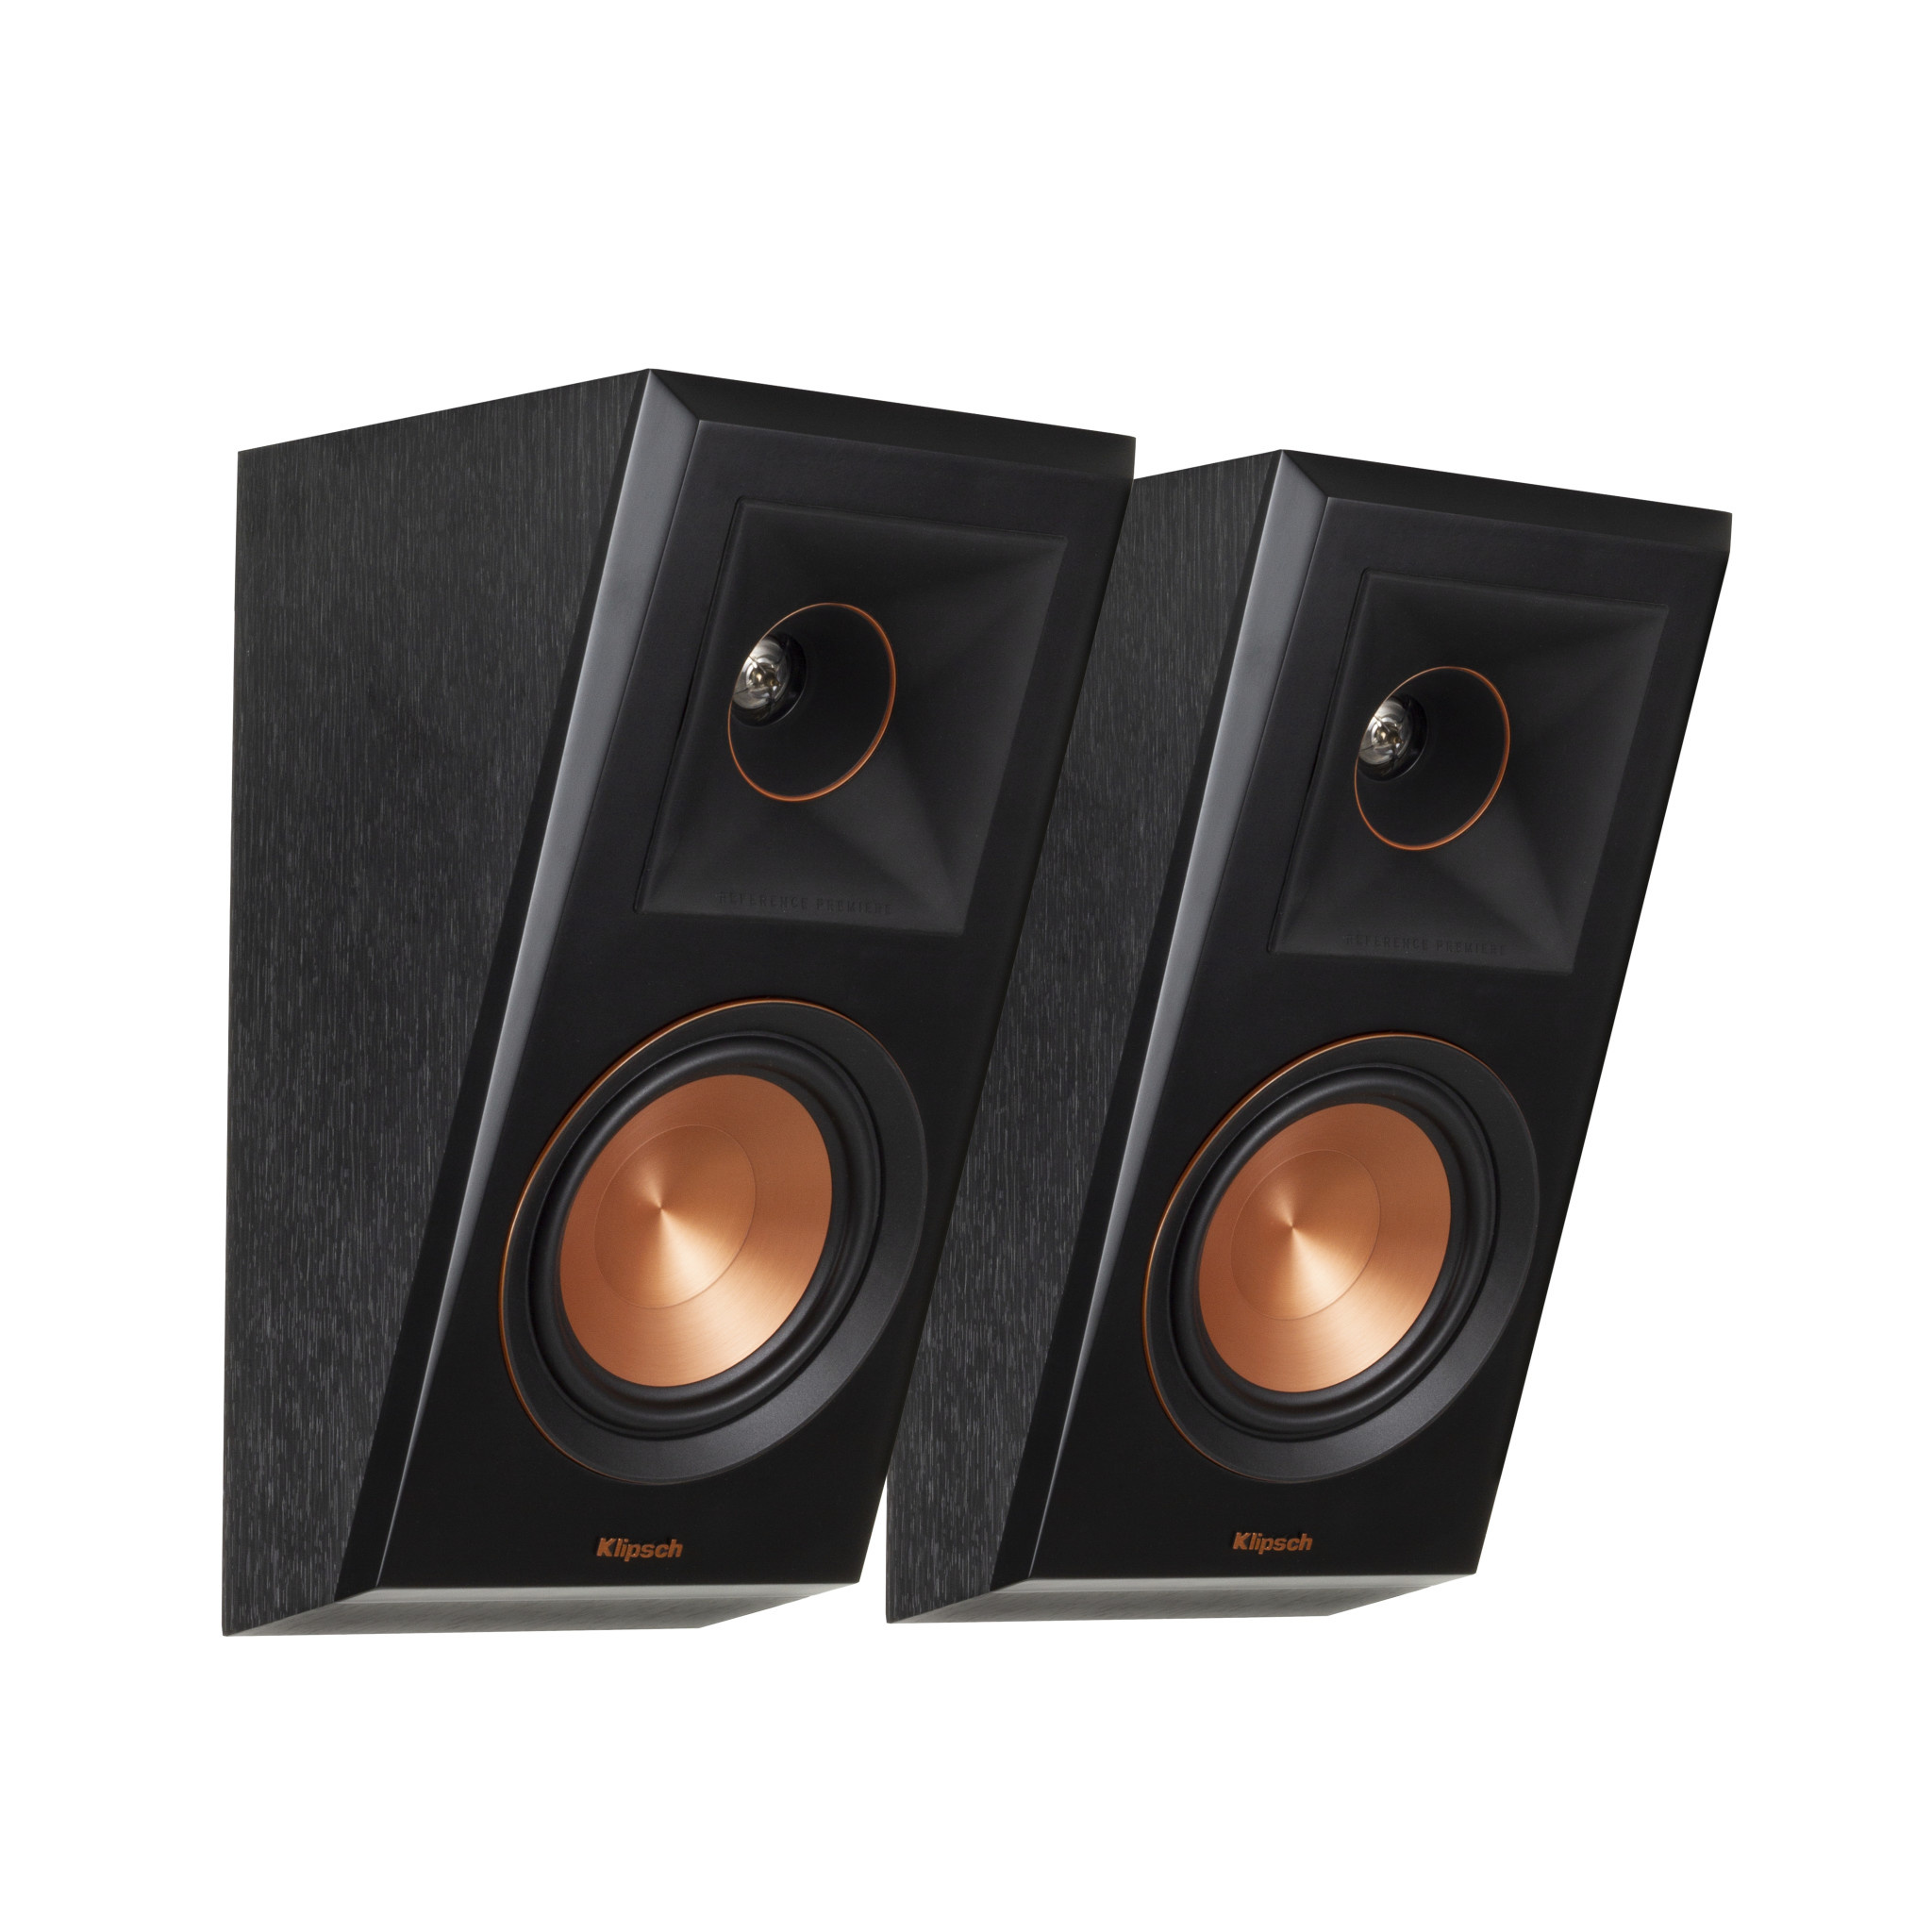 Klipsch Klipsch RP-500SA Dolby Atmos Elevation / Surround Speakers (Pair)